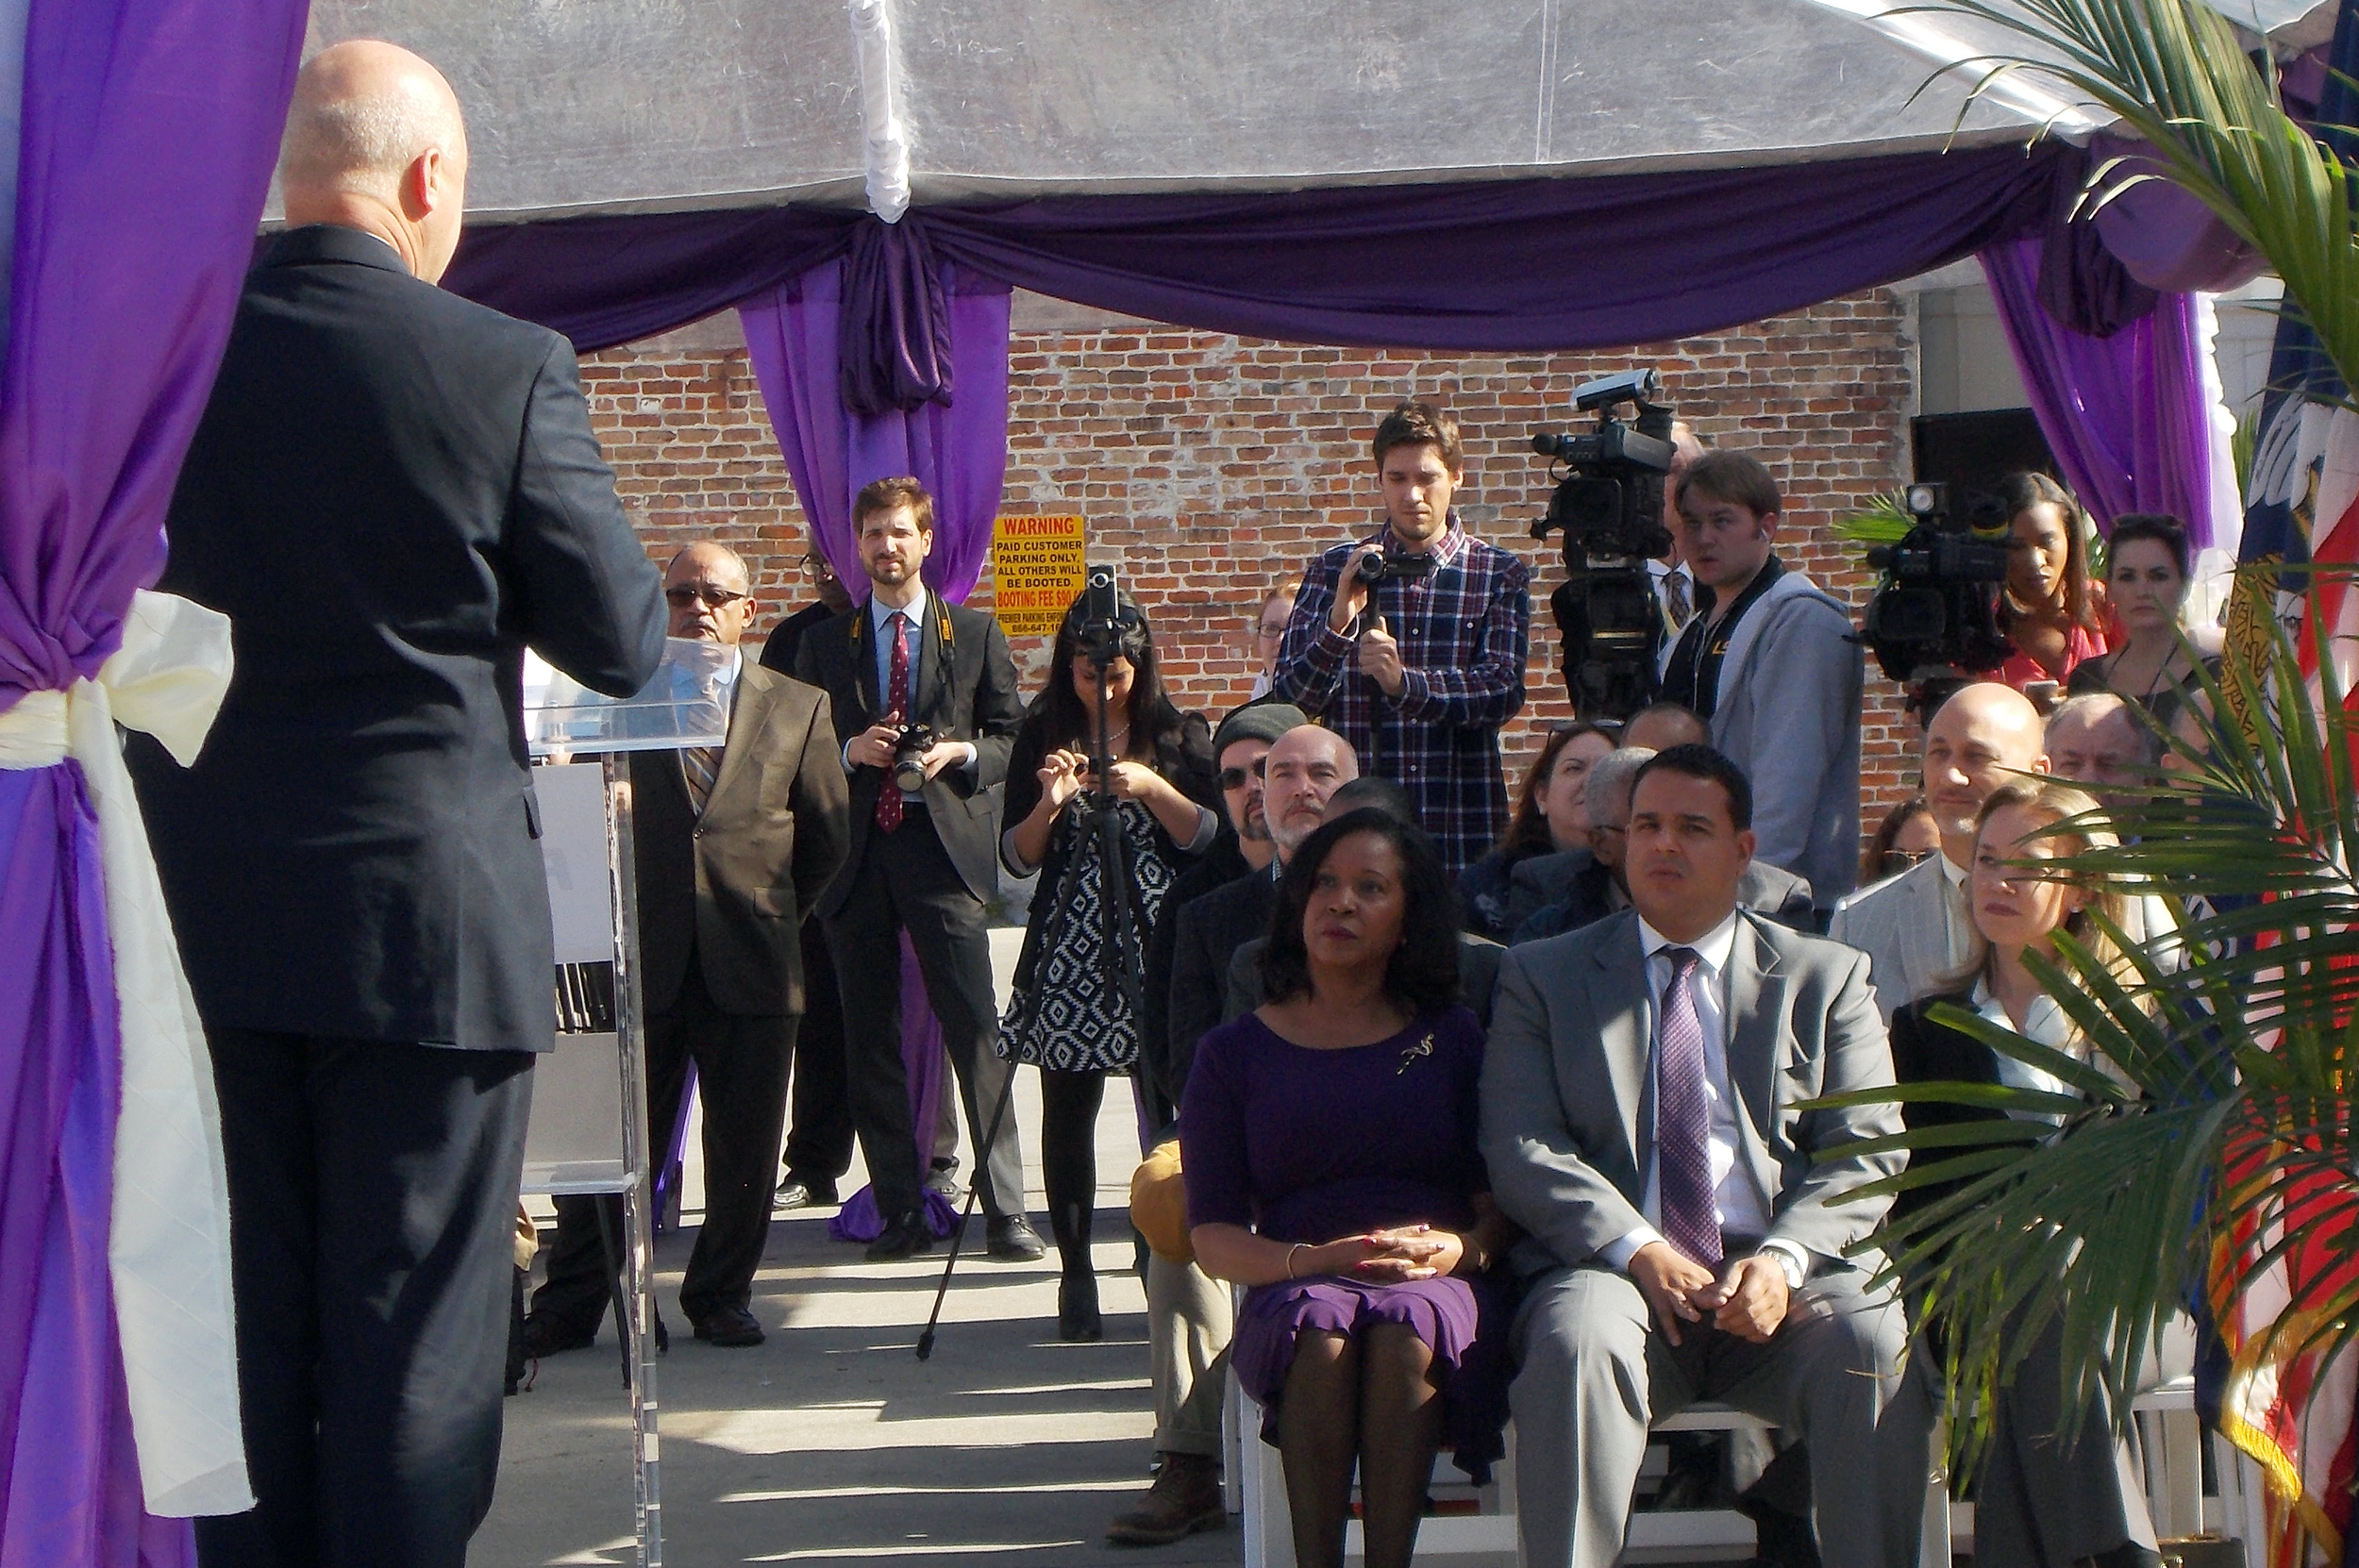 New Orleans Mayor Mitch Landrieu gives a speech at the ground breaking ceremony for the Regional Transit Authority's Rampart Streetcar Line Wednesday, January 28, 2015.